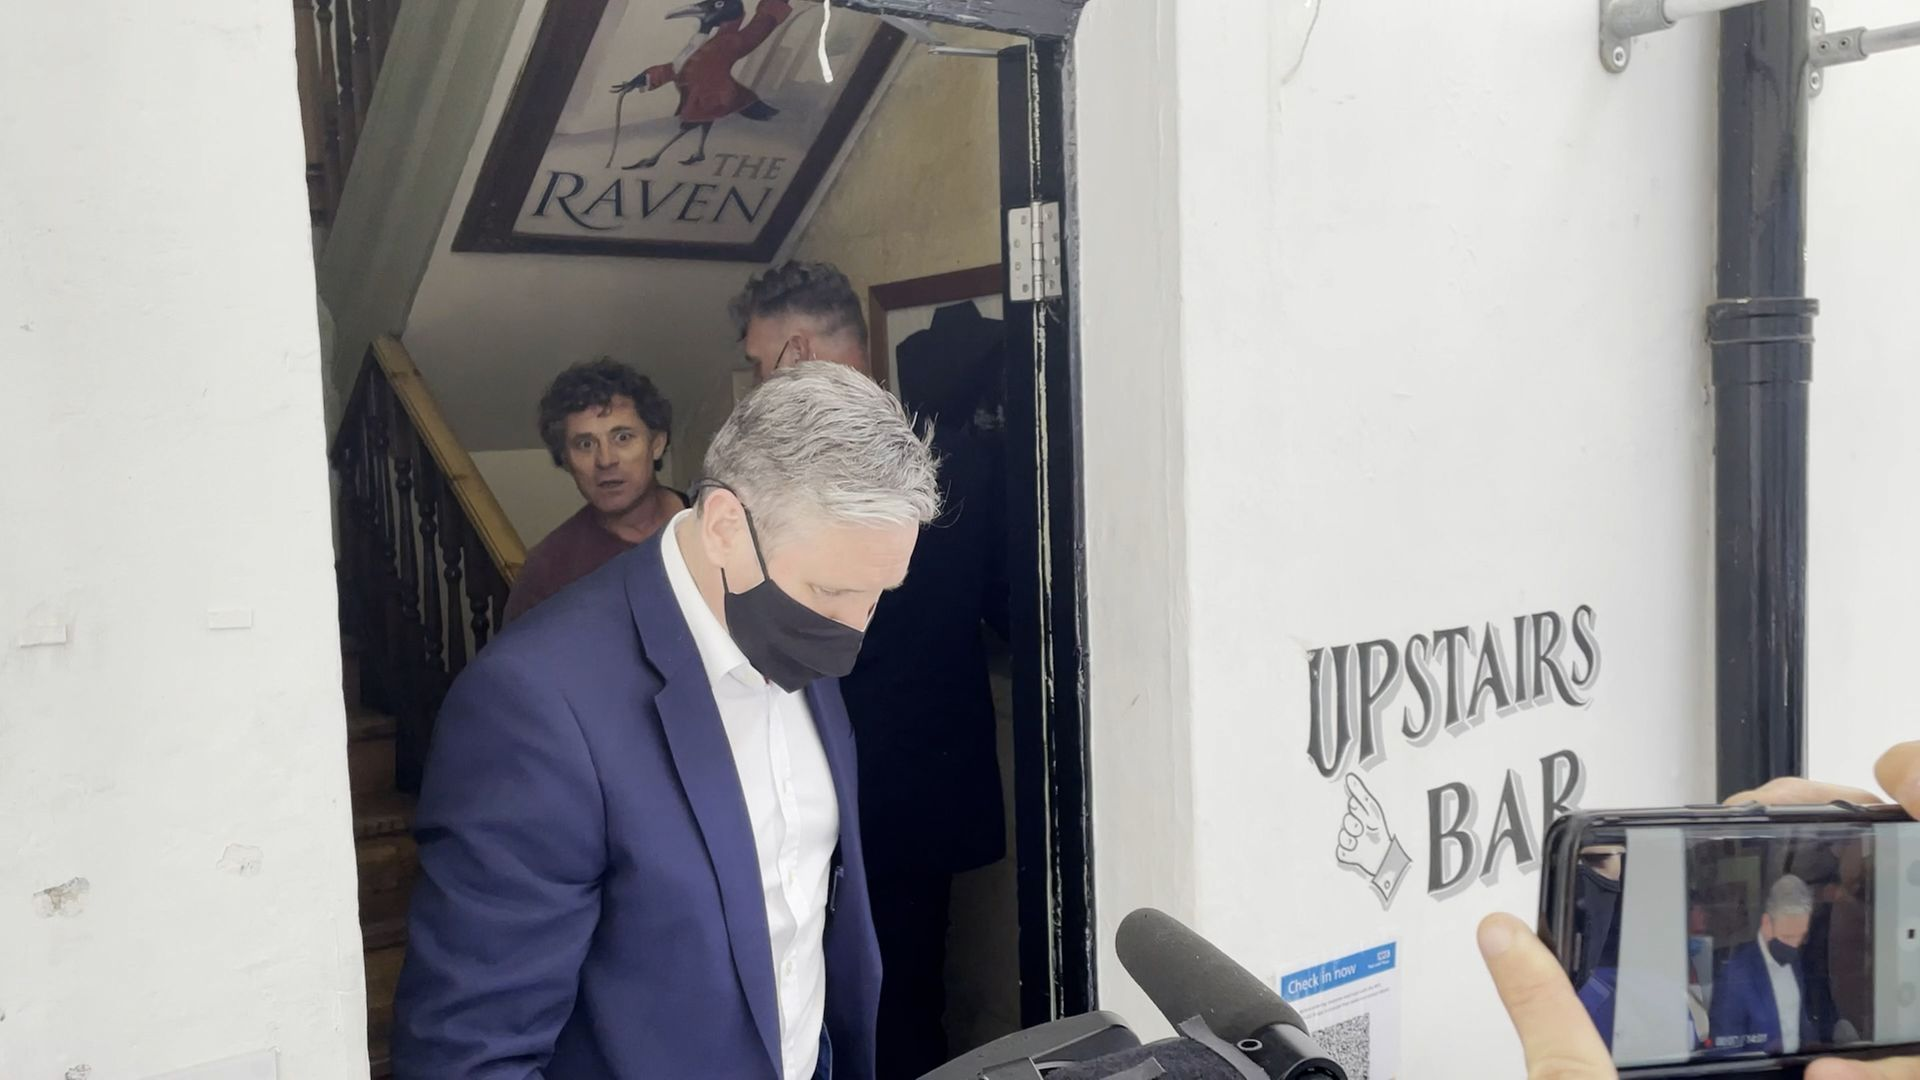 Rod Humphris (back left) landlord of the Raven pub refuses entry to Labour leader Sir Keir Starmer (front) during his visit to Bath - Credit: PA